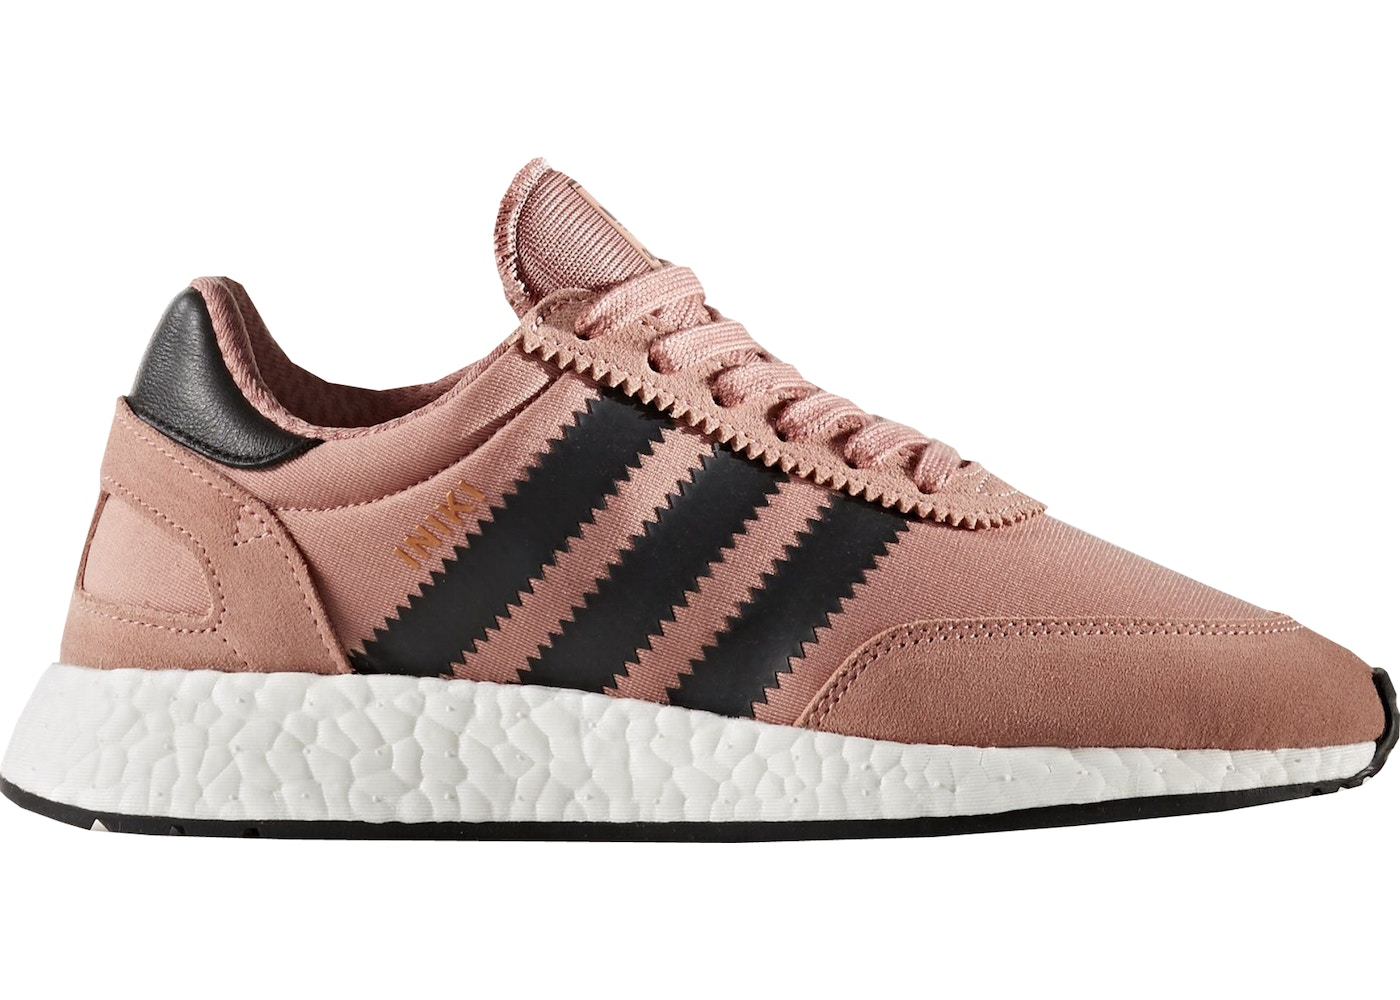 b542231c76f Sell. or Ask. Size  8W. View All Bids. adidas Iniki Runner Raw Pink ...